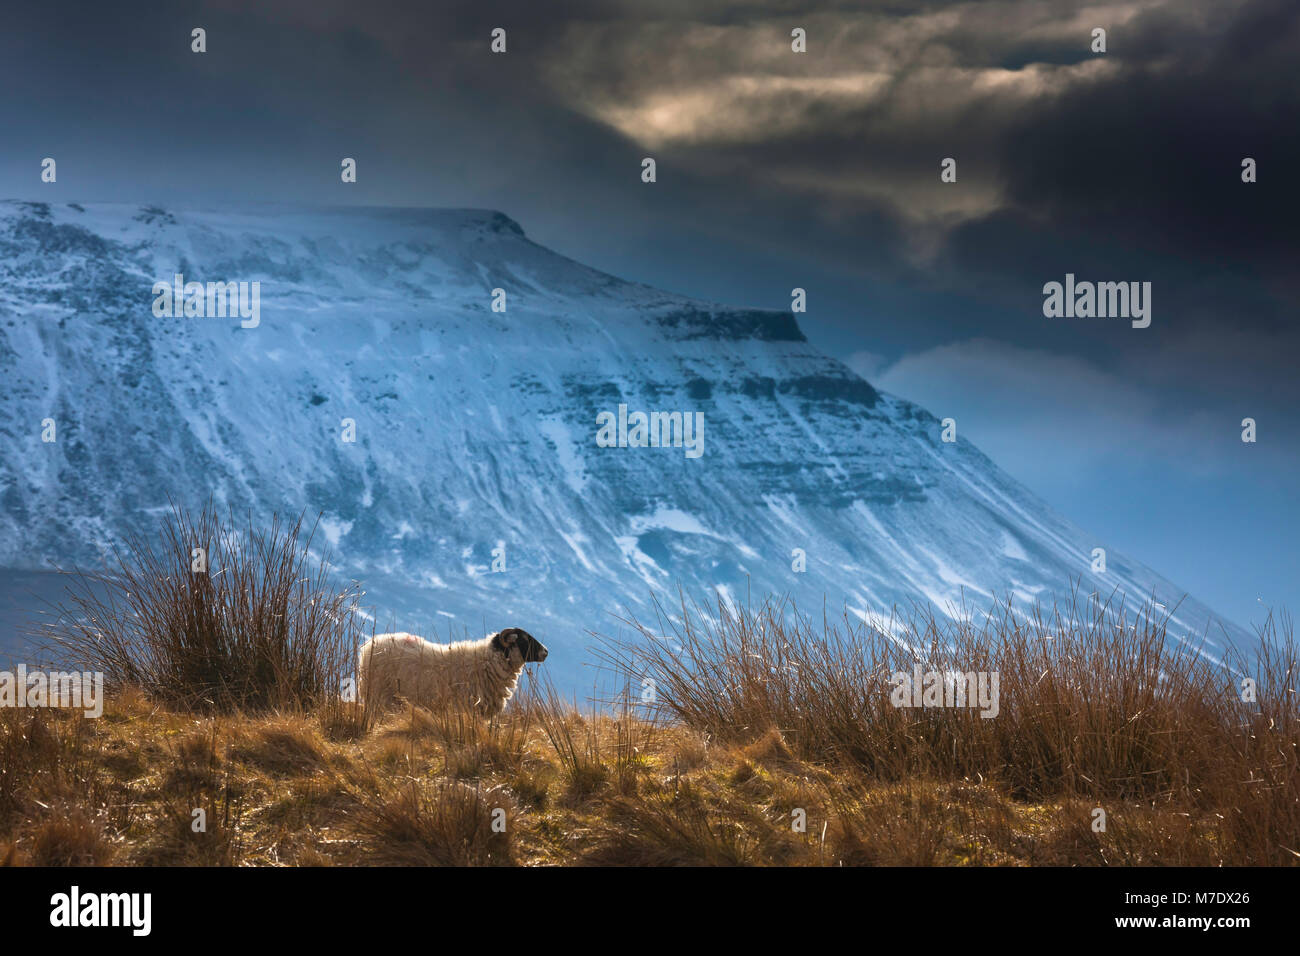 A black faced sheep in a field beneath a snow covered Ingleborough, Ingleborough is one of the three peaks forming - Stock Image